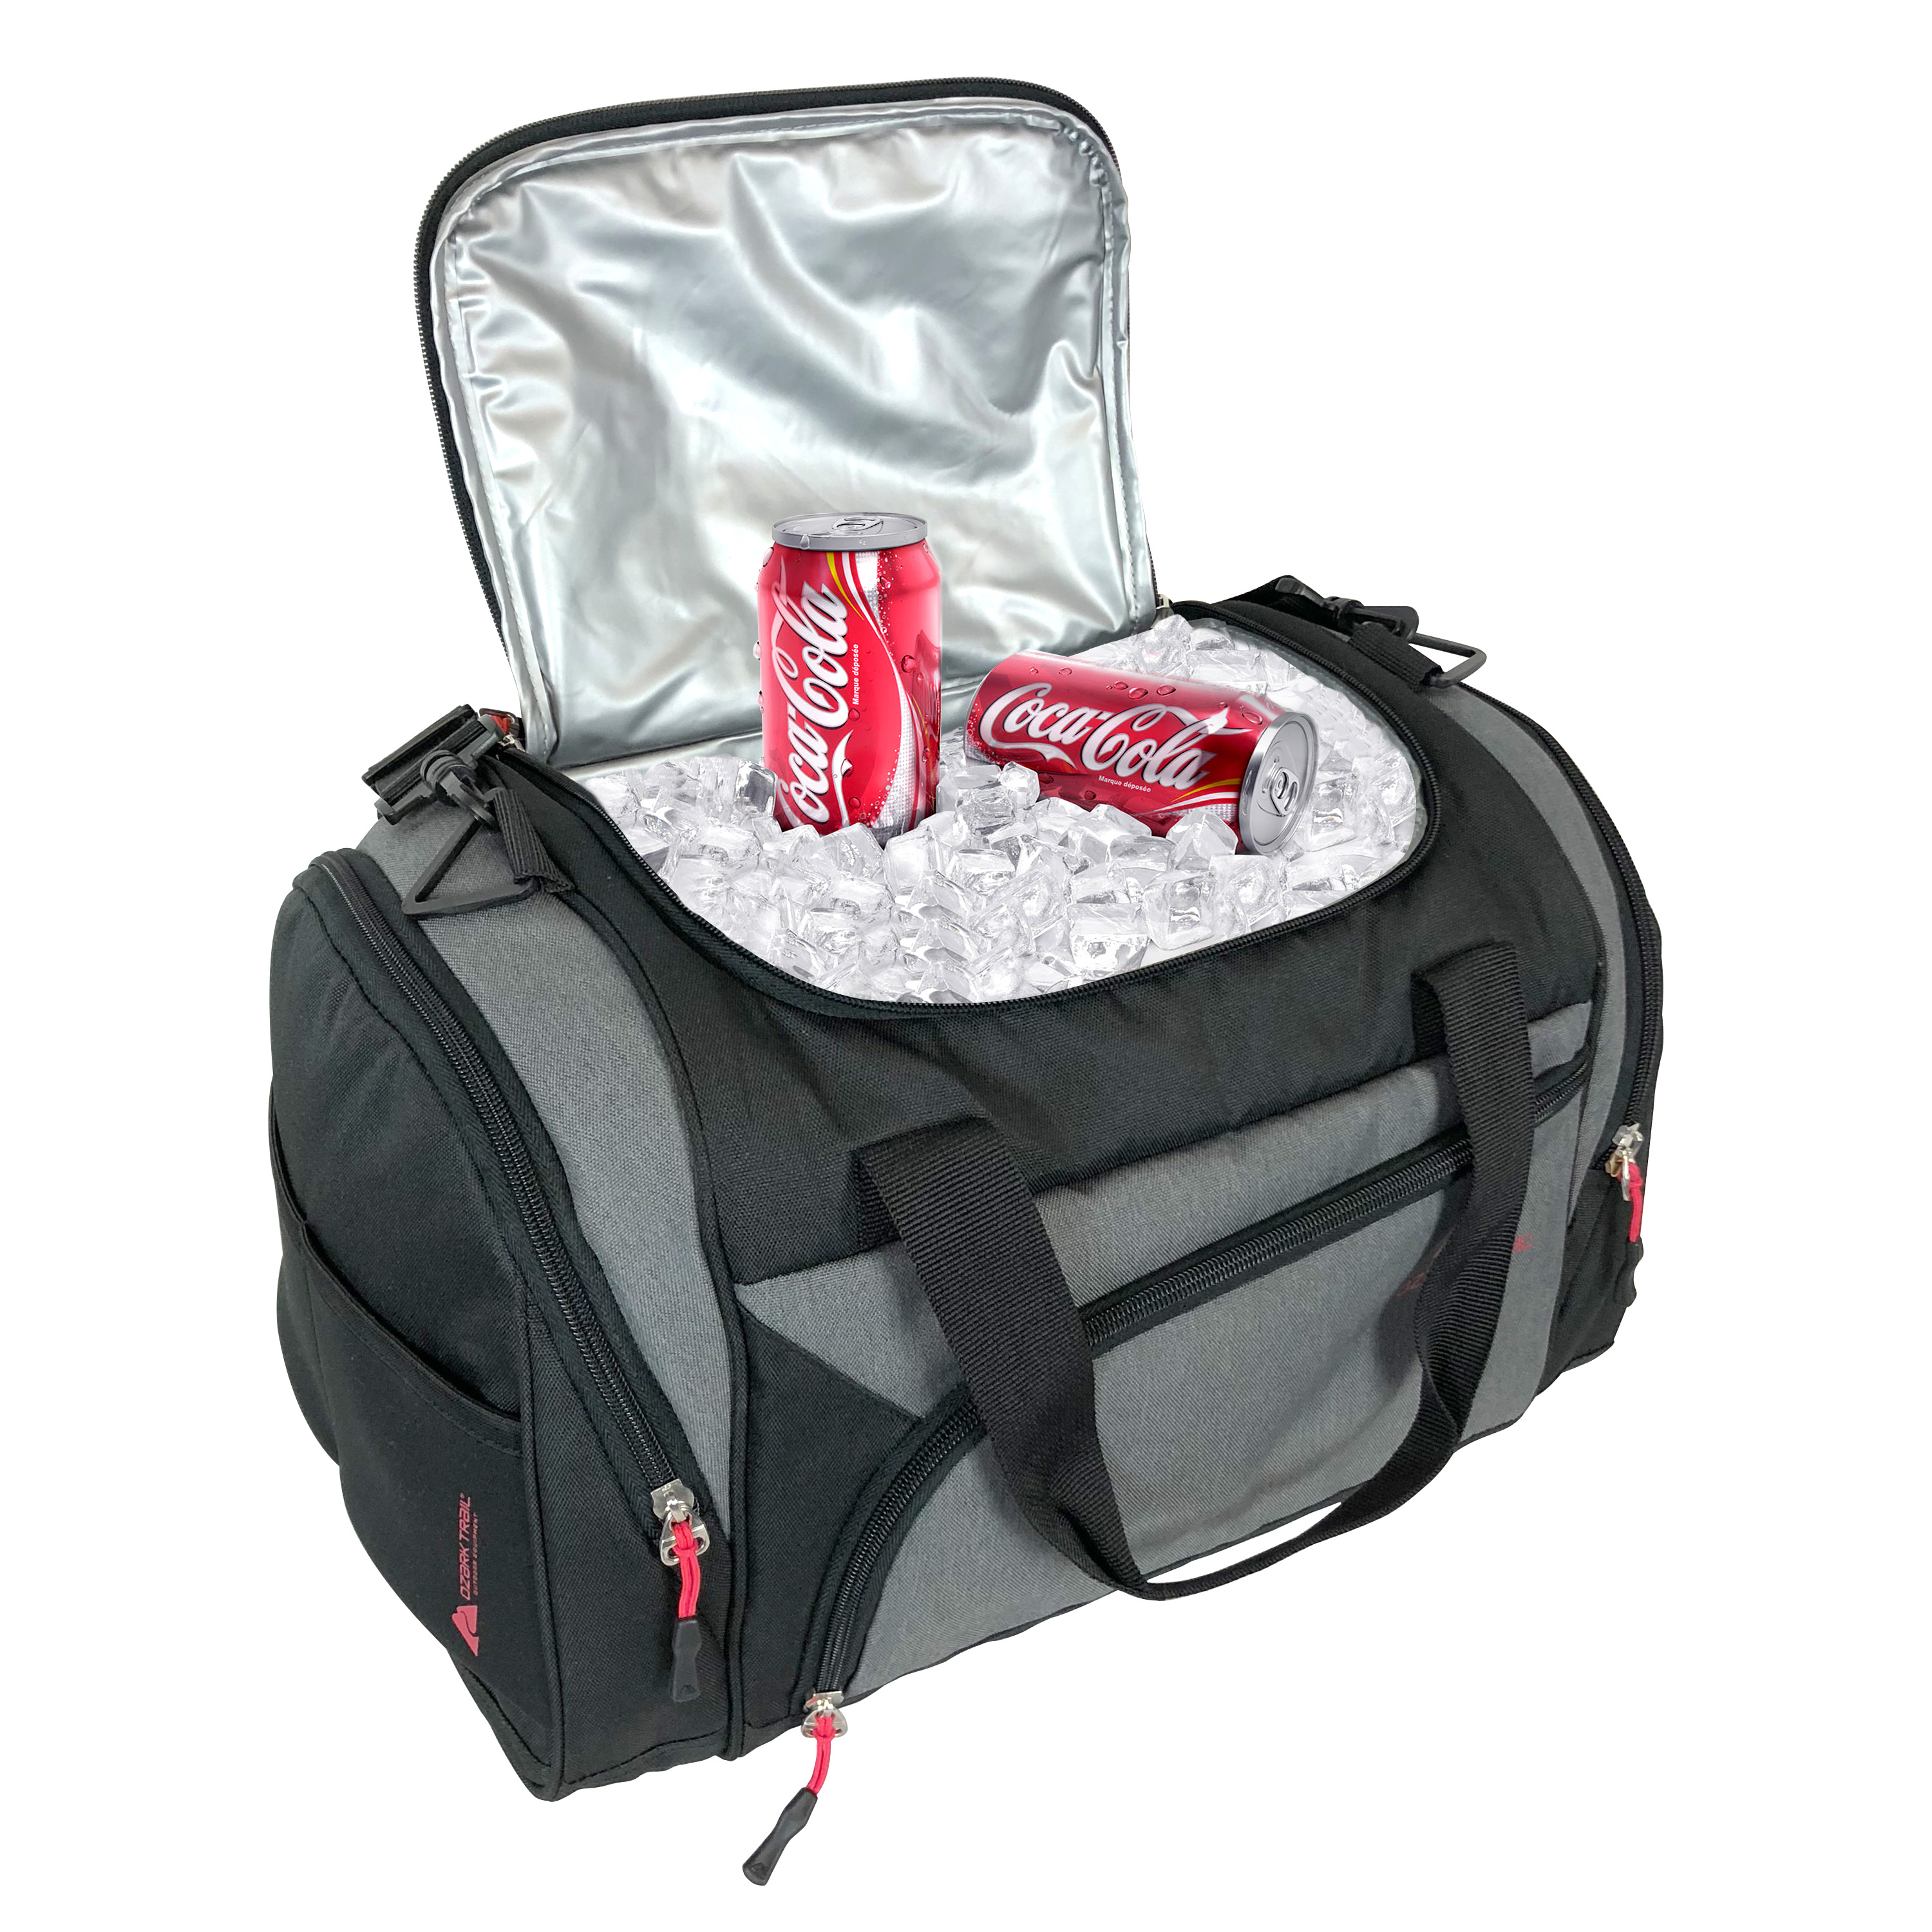 OZARK TRAIL 40 CAN COOLER DUFFEL